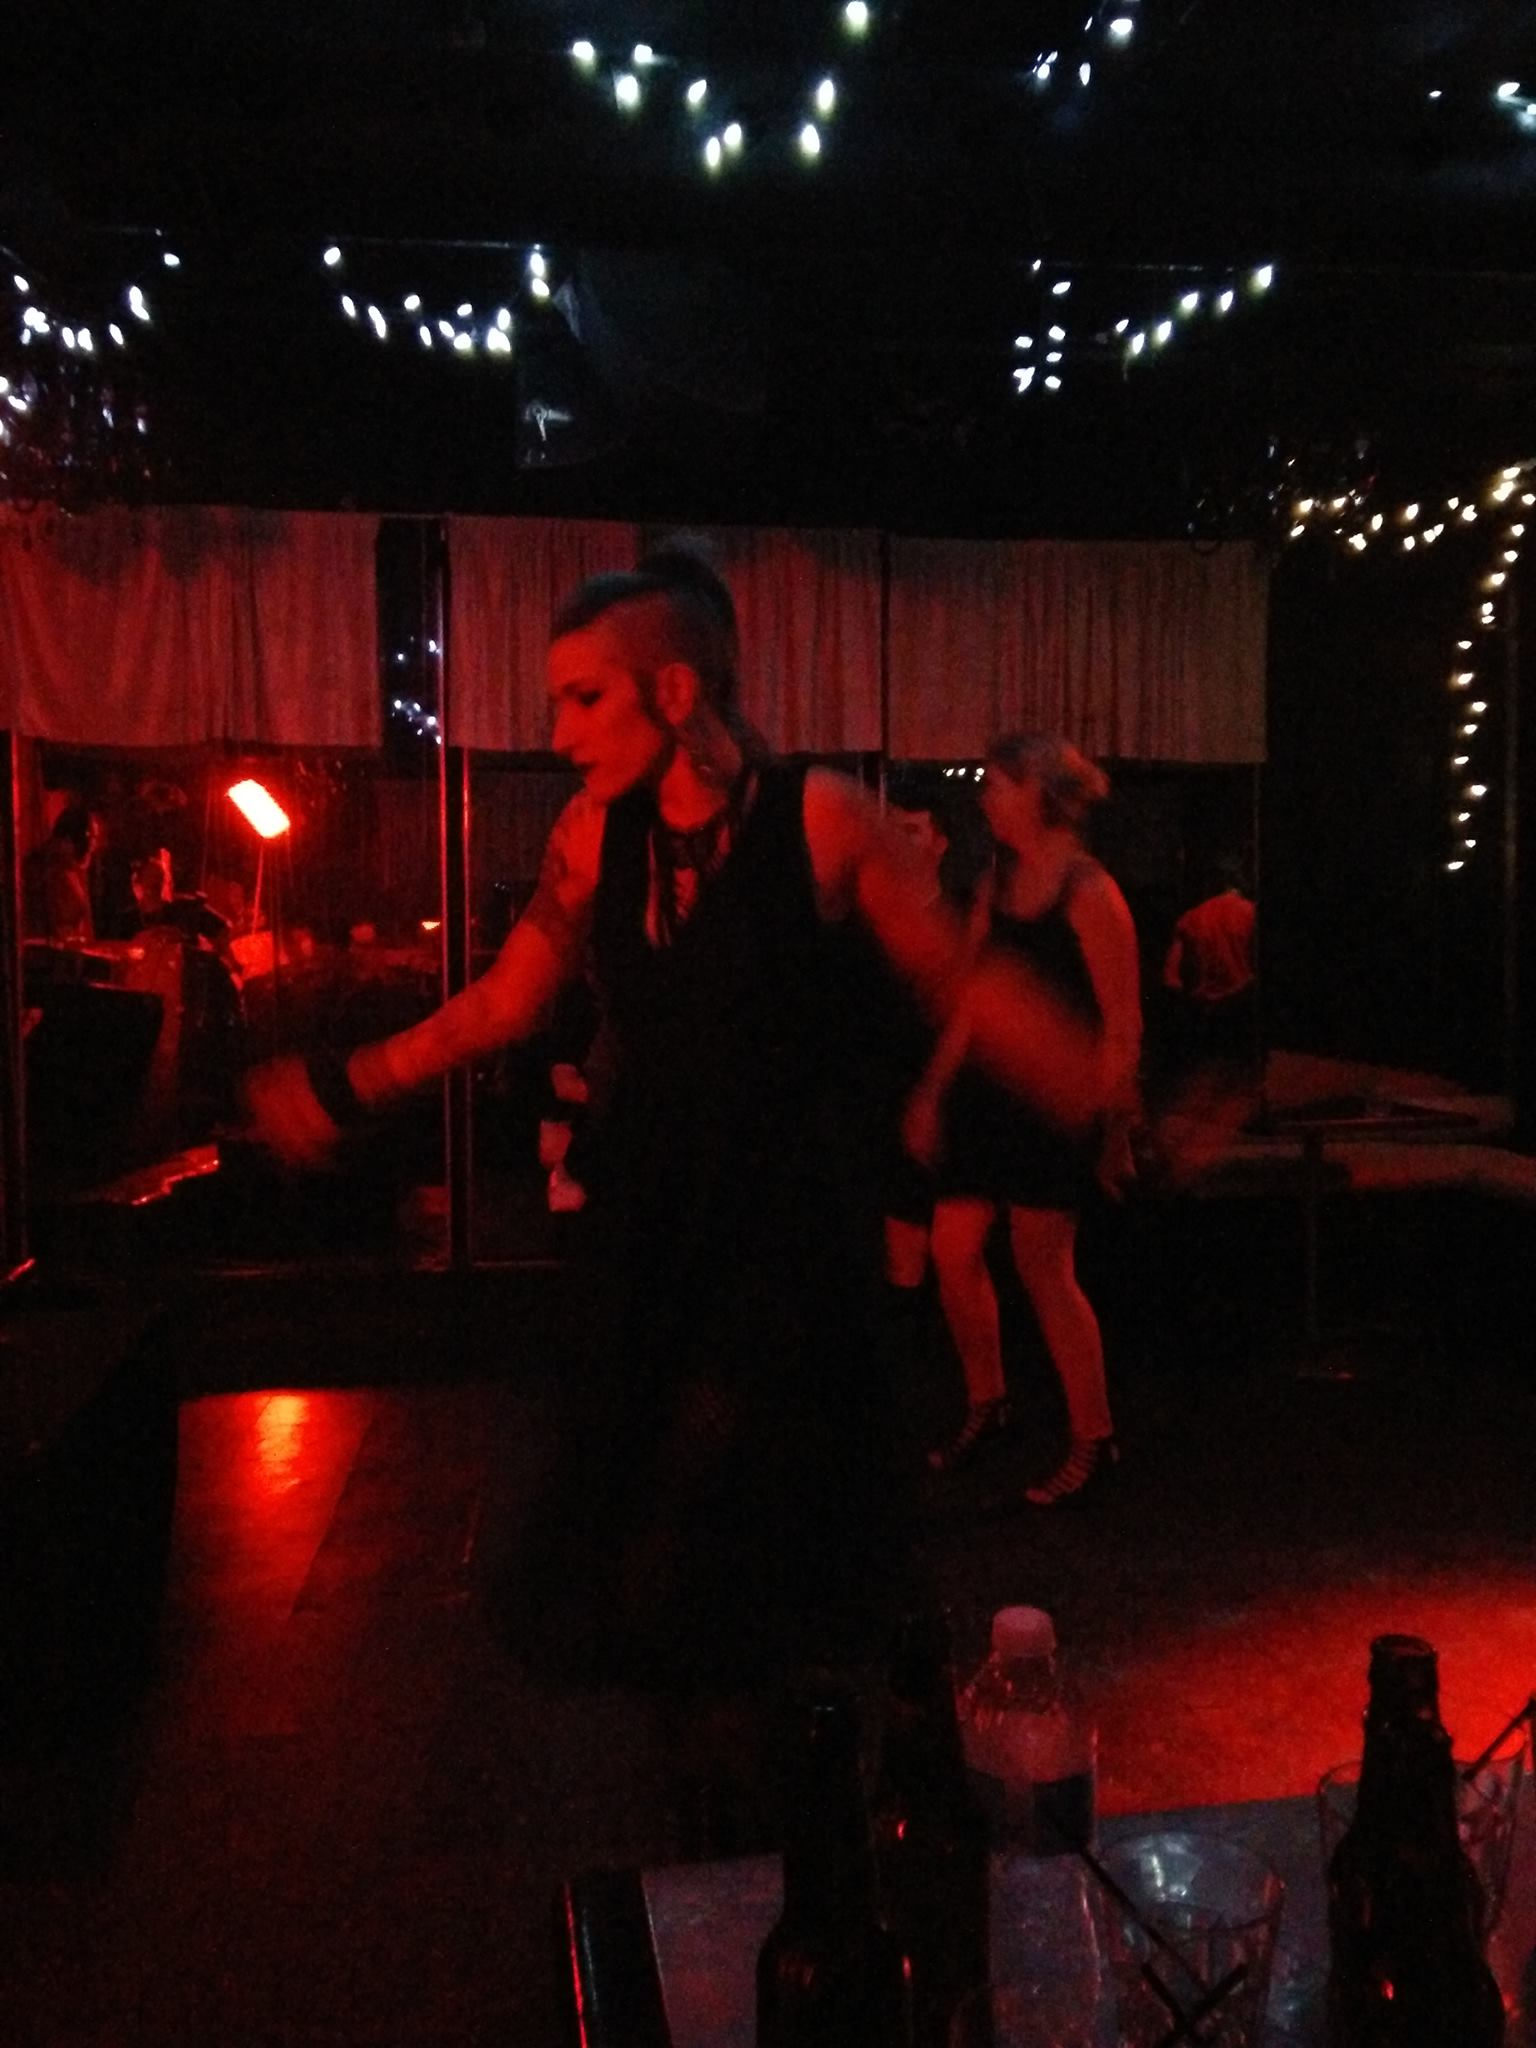 Dancing at the Toronto goth night Prophecy